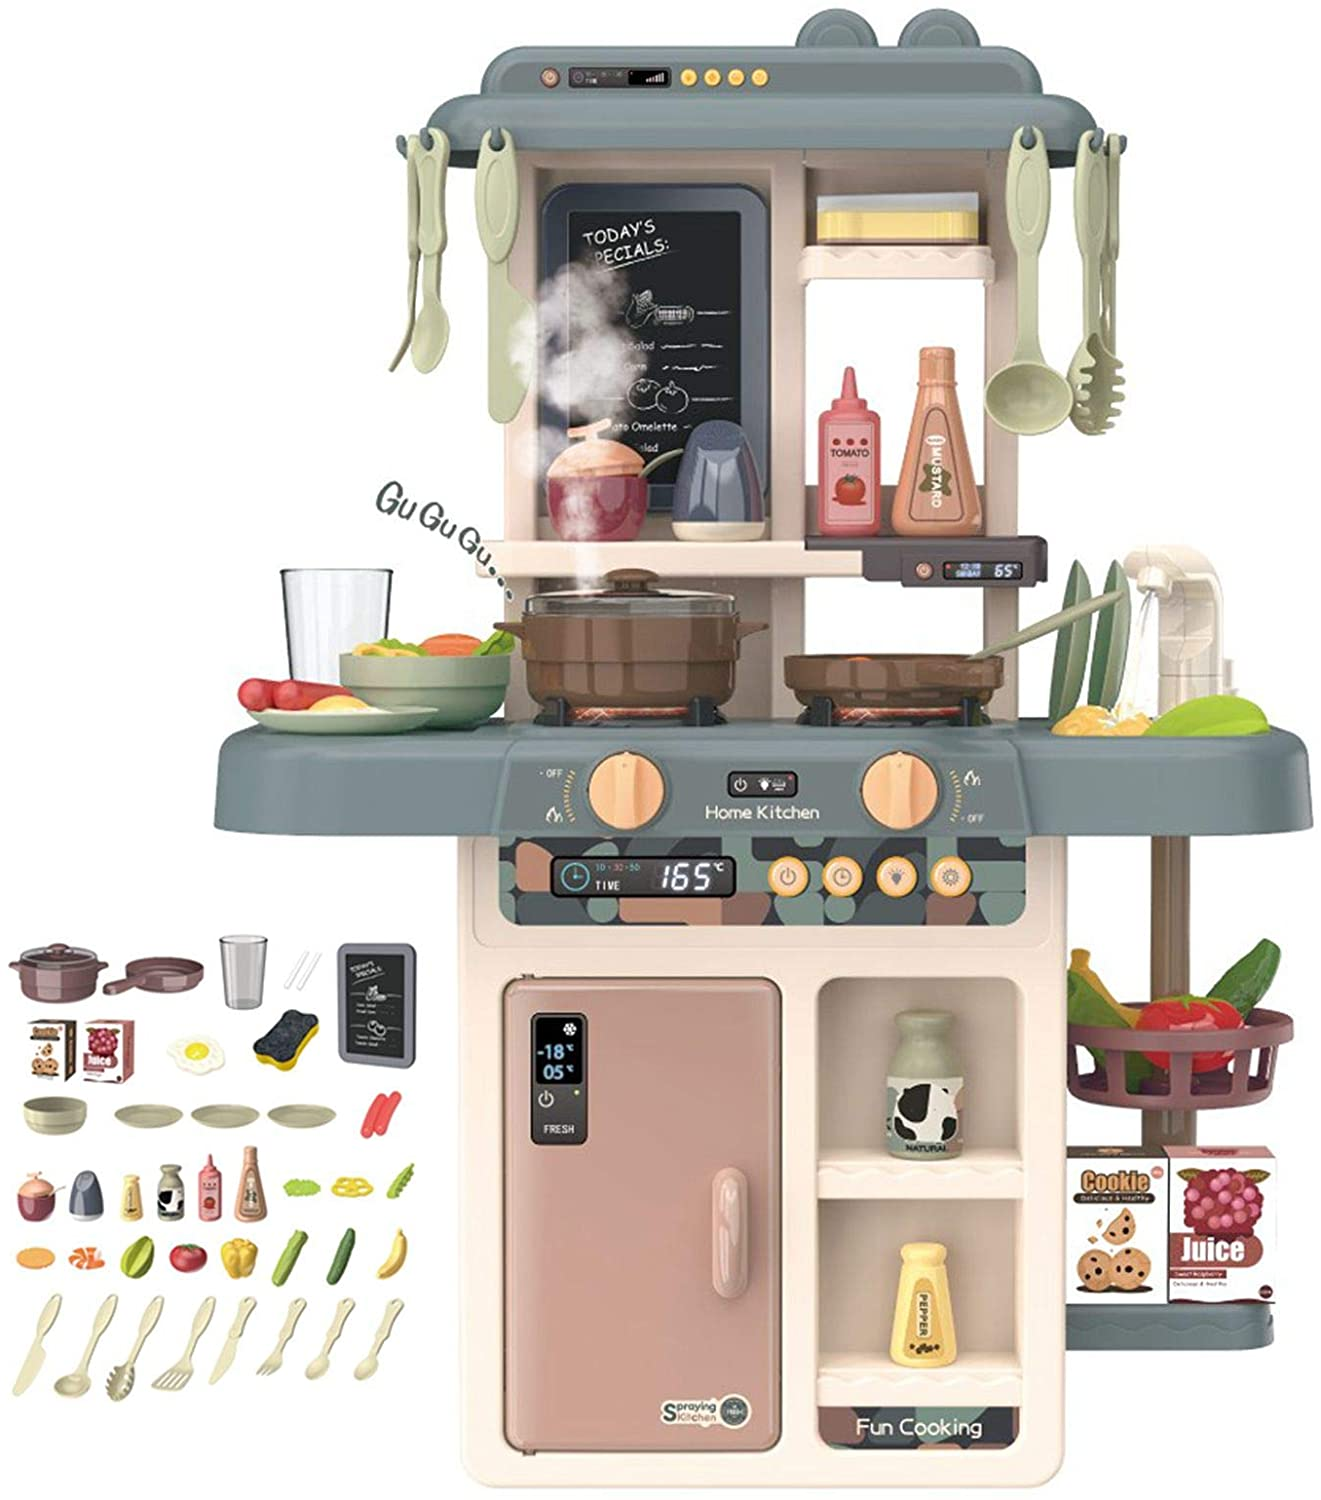 Kids Kitchen Playset 39PCs Set Mini Pretend Role Play Cooking Toys with Real Lights & Sounds Fun with Friends Party Games Girls Boys Christmas New Years Gifts Fast US 7-10days Delivery